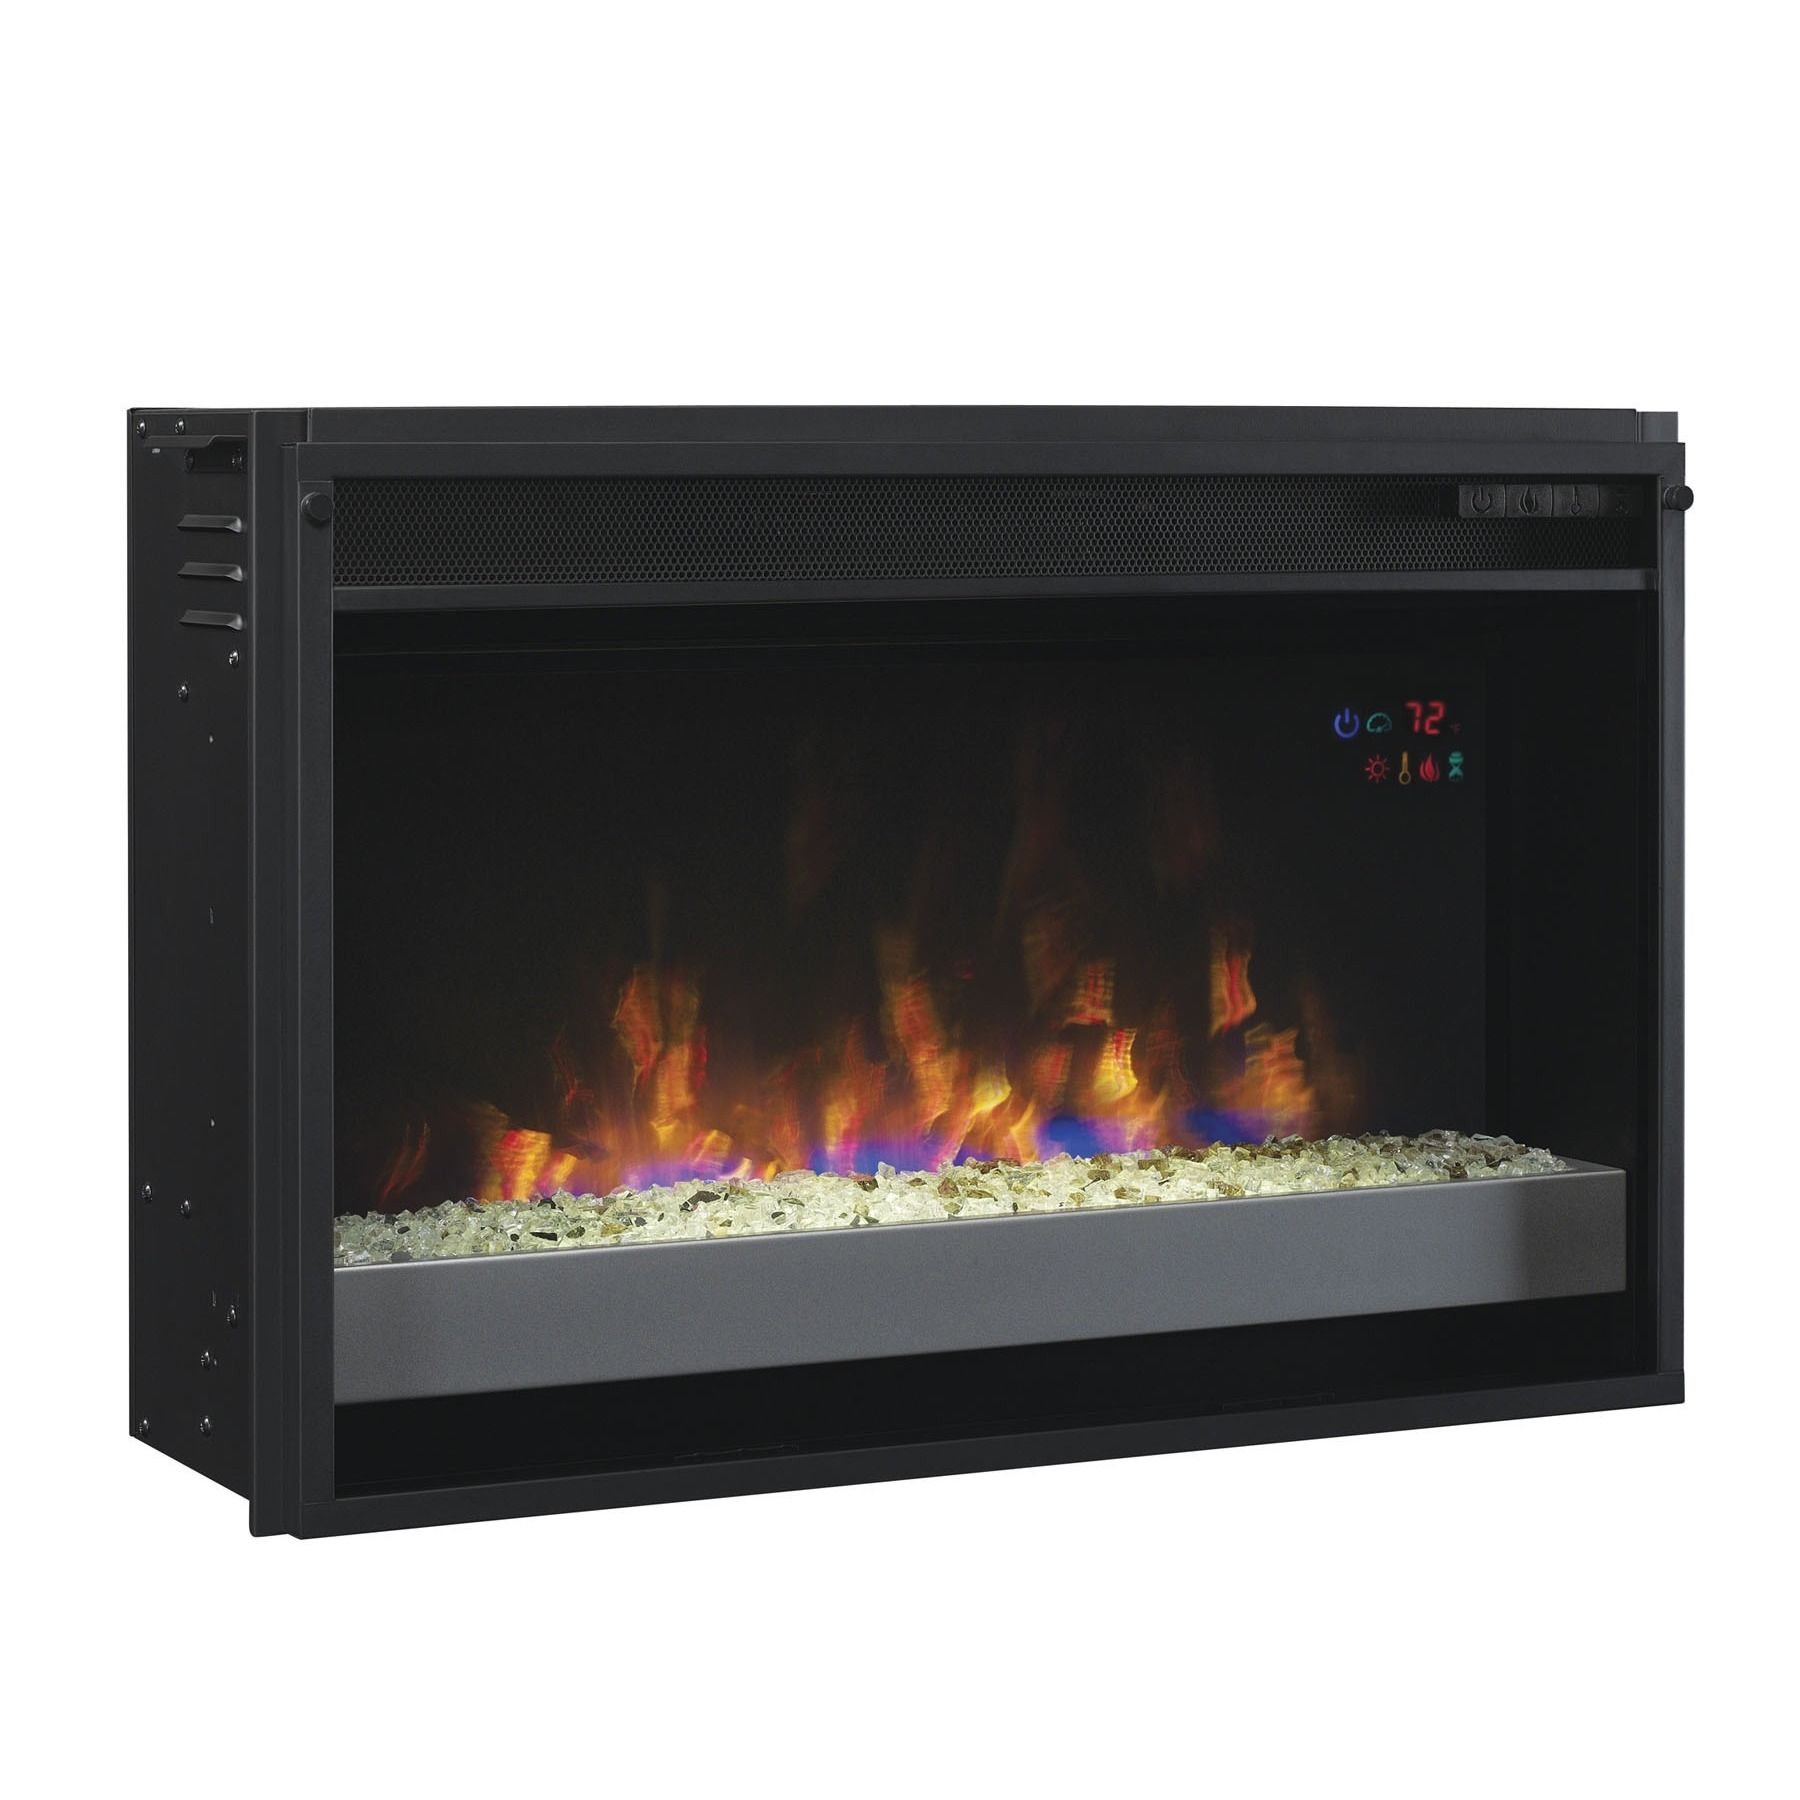 Classicflame 26ef031gpg 201 26 Inch Contemporary Electric